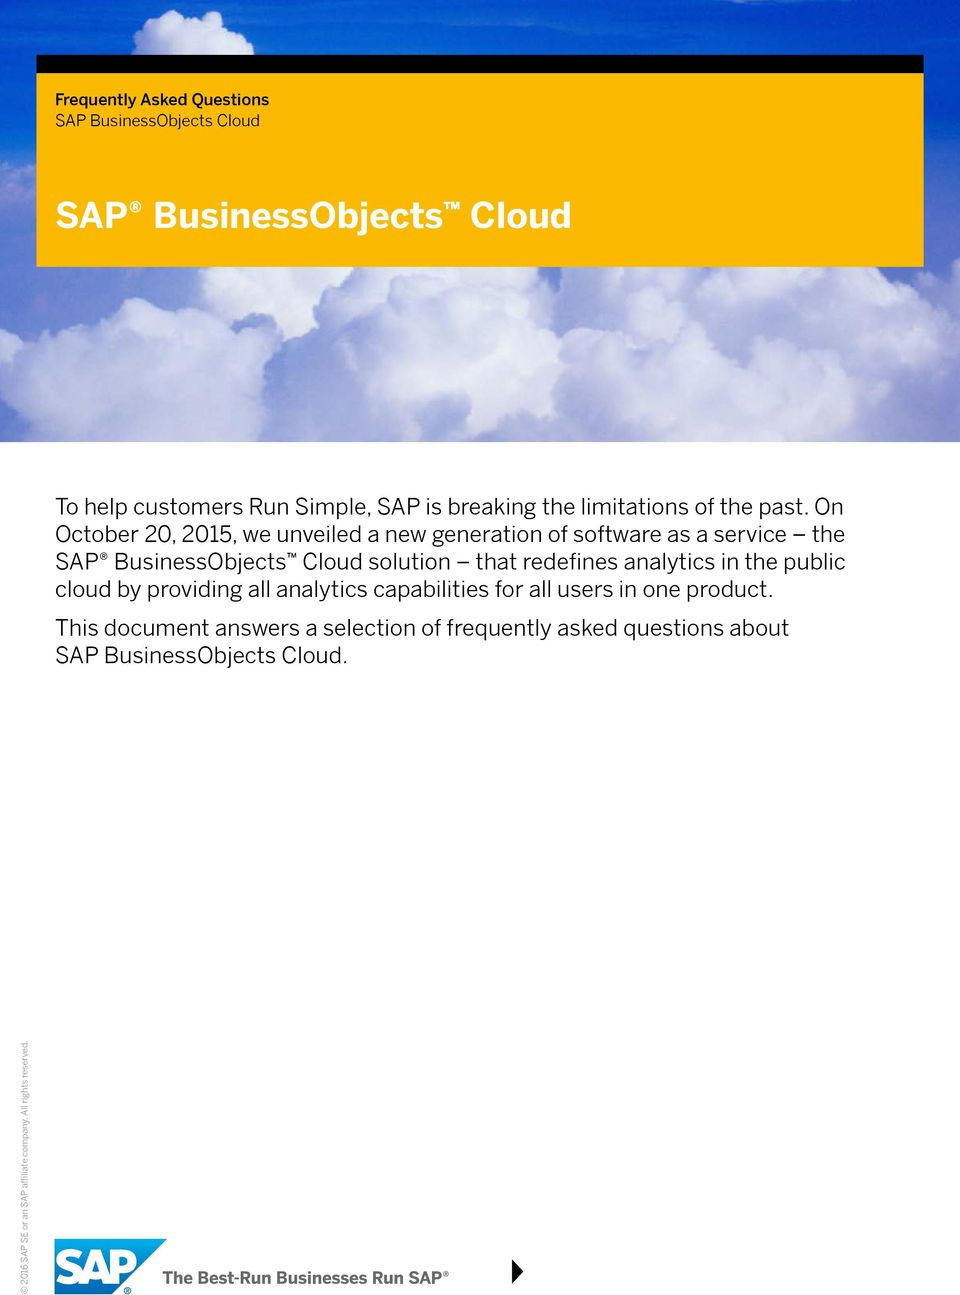 On October 20, 2015, we unveiled a new generation of software as a service the SAP BusinessObjects Cloud solution that